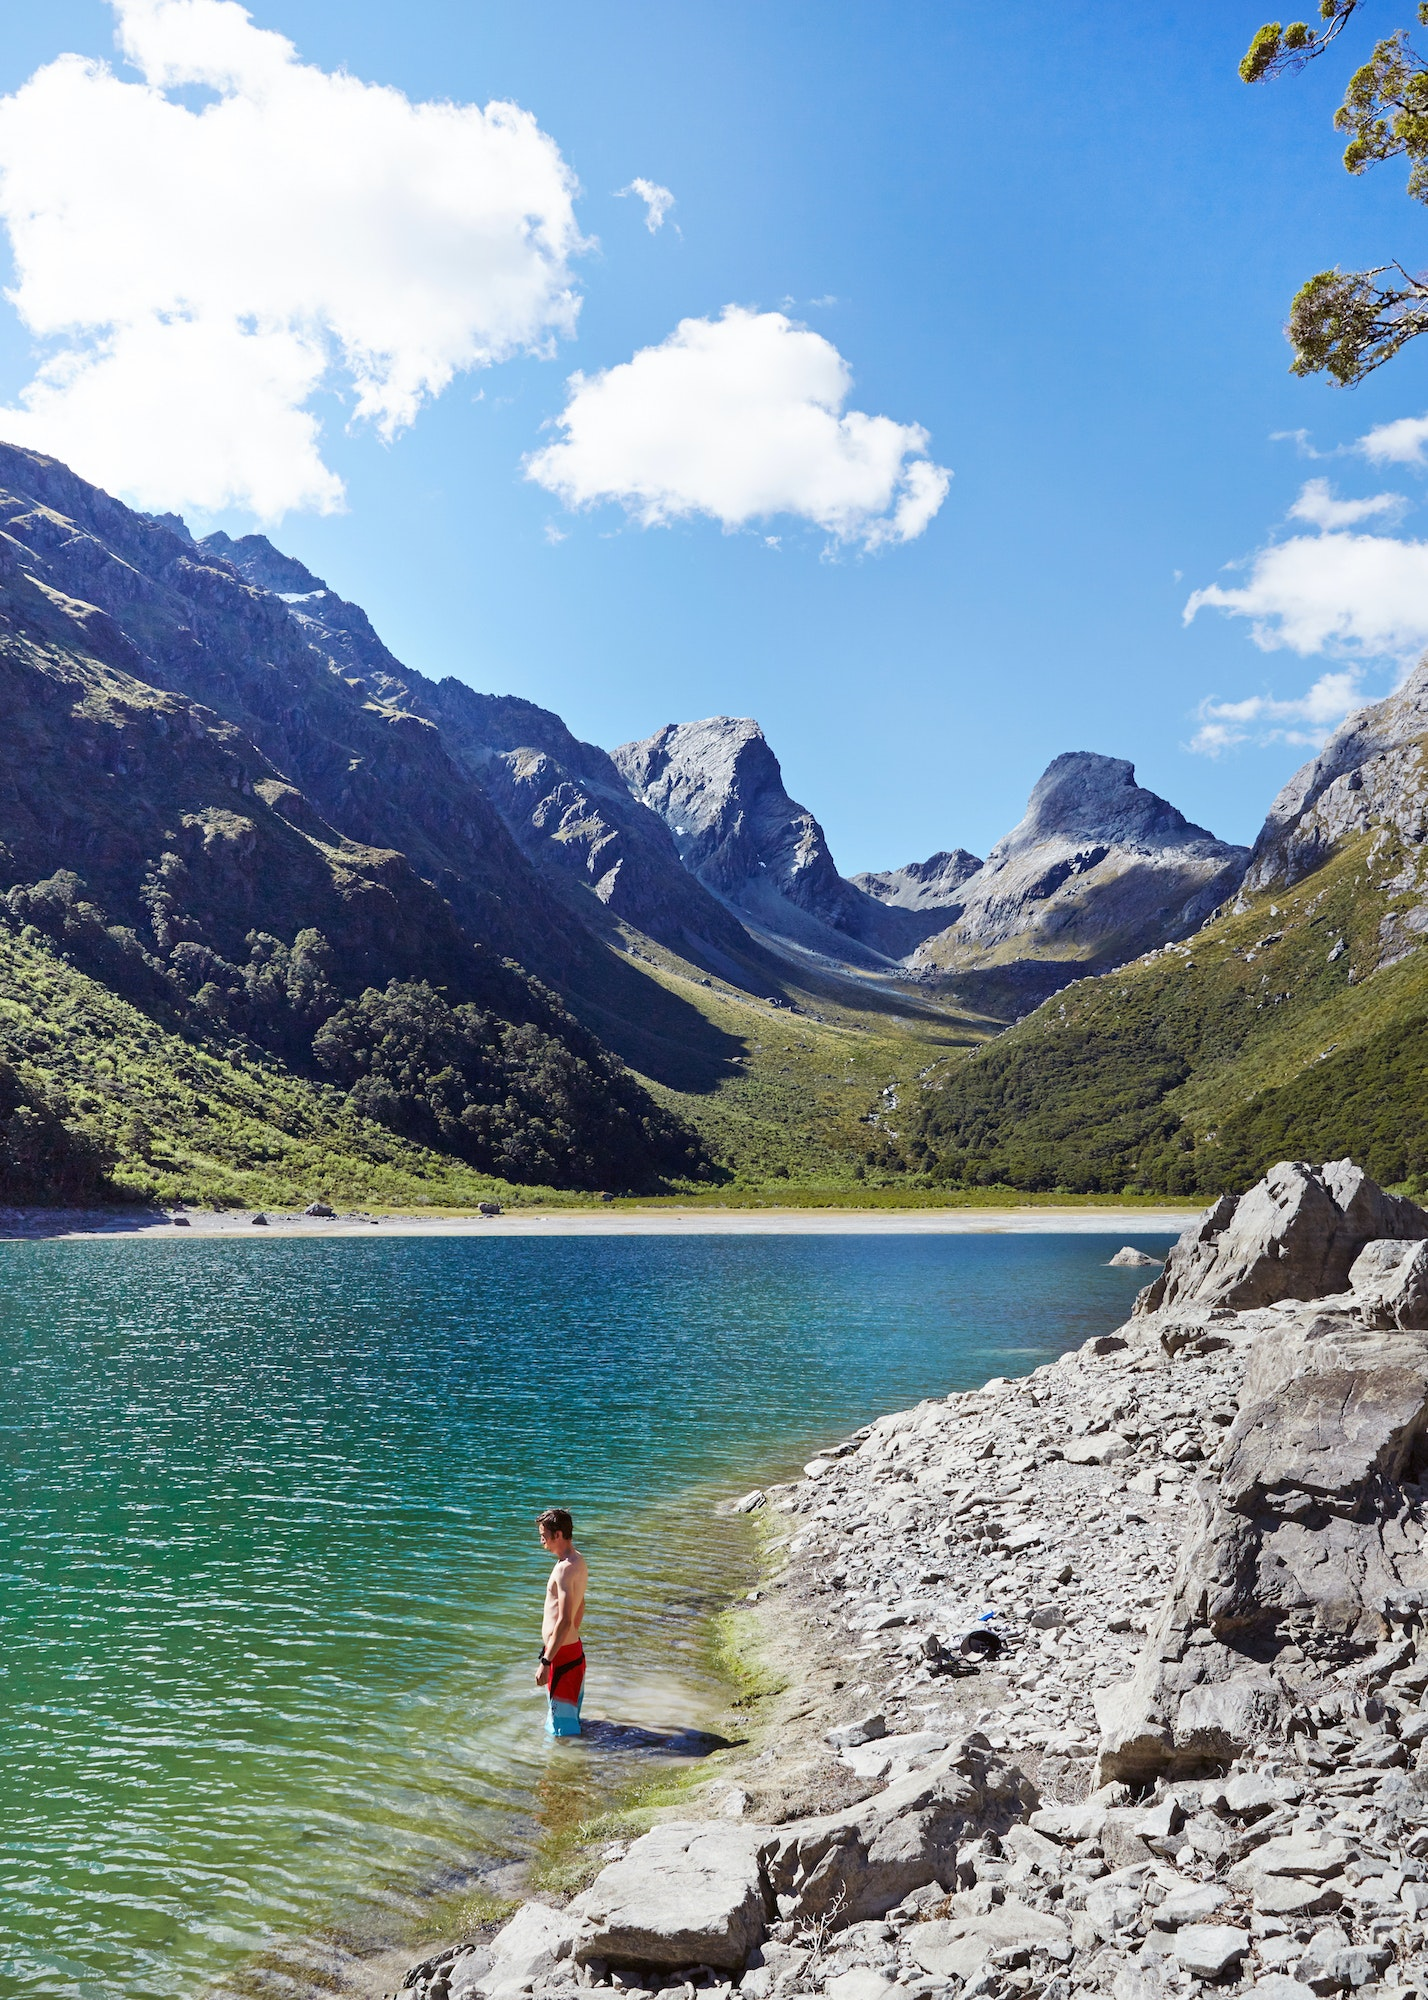 The Routeburn Track weaves through meadows, reflective tarns, and alpine lakes, linking Mount Aspiring National Park with Fiordland National Park.